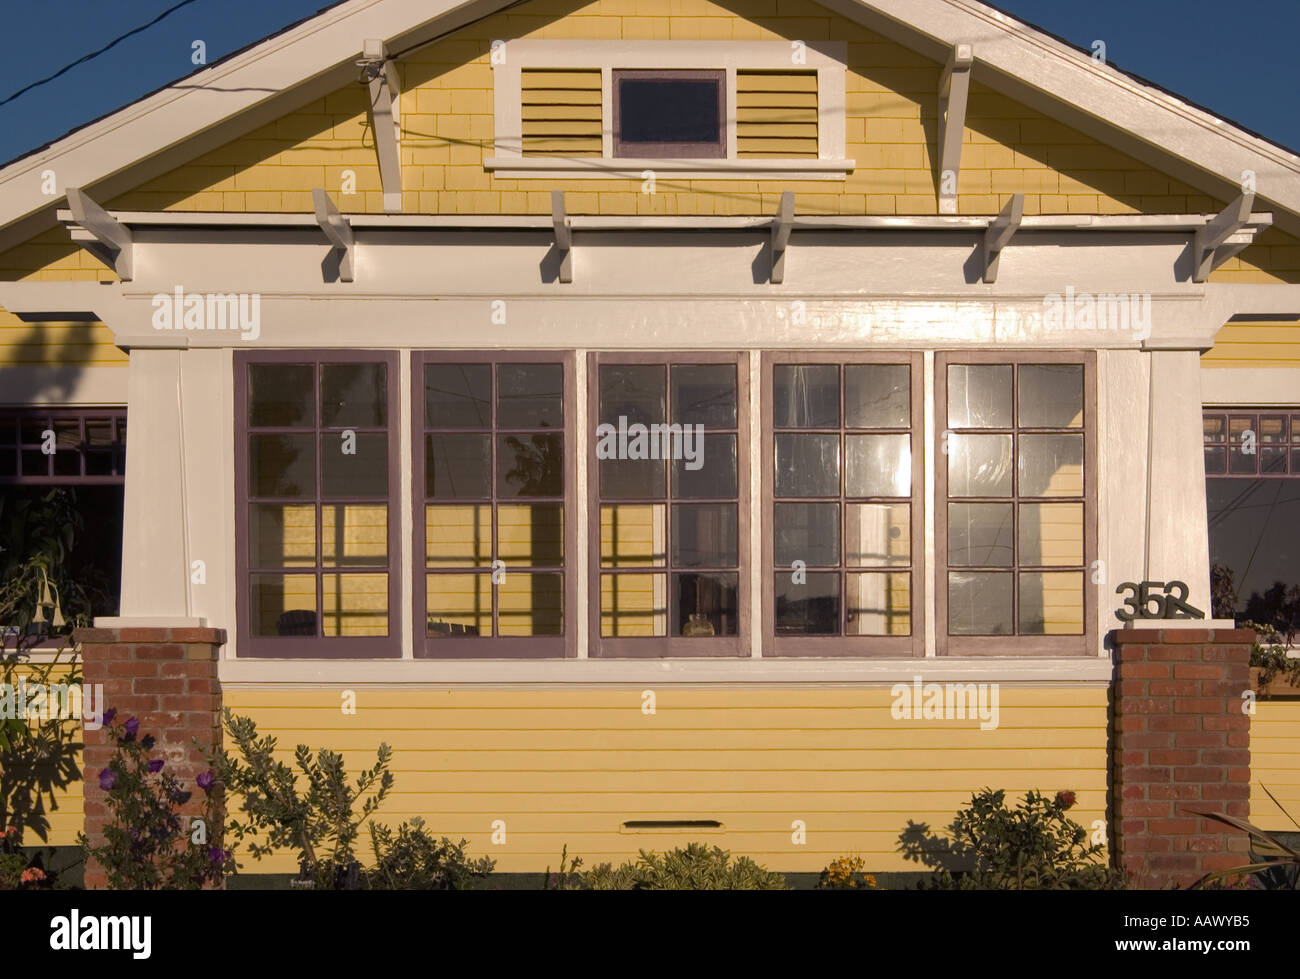 Covered front porch craftsman style home royalty free stock image - A Color Horizontal Photo Of A Yellow Craftsman Bungalow Style House In Southern California With Sun